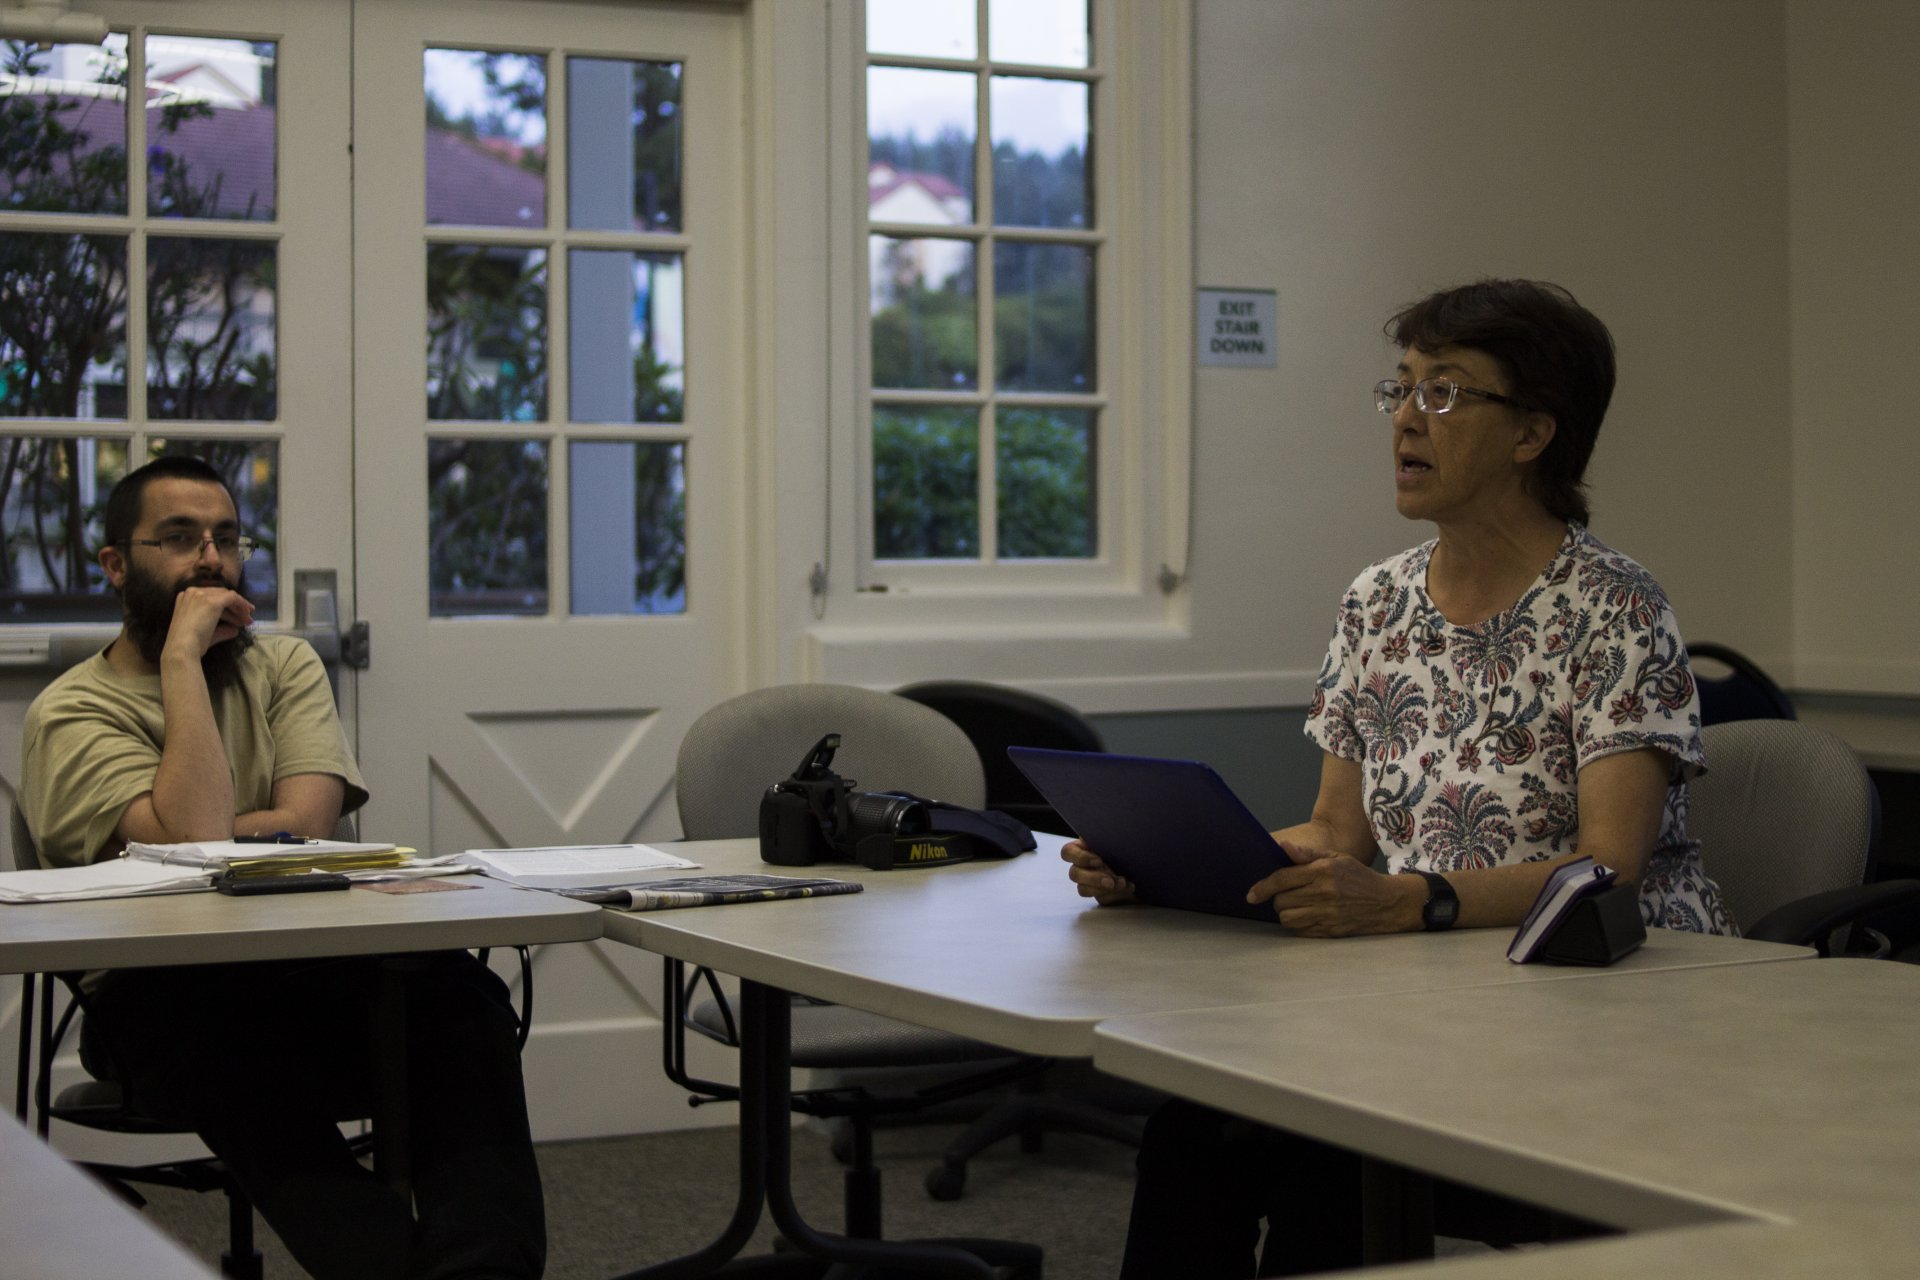 Nathaniel Mcguigan, minister of communications for Humboldt's chapter of Party of Socialism and Liberation (PSL), and Gloria La Riva, American socialist activist, leads workshop at HSU on proposition 10 for rent control. | Photo by Tony Wallin